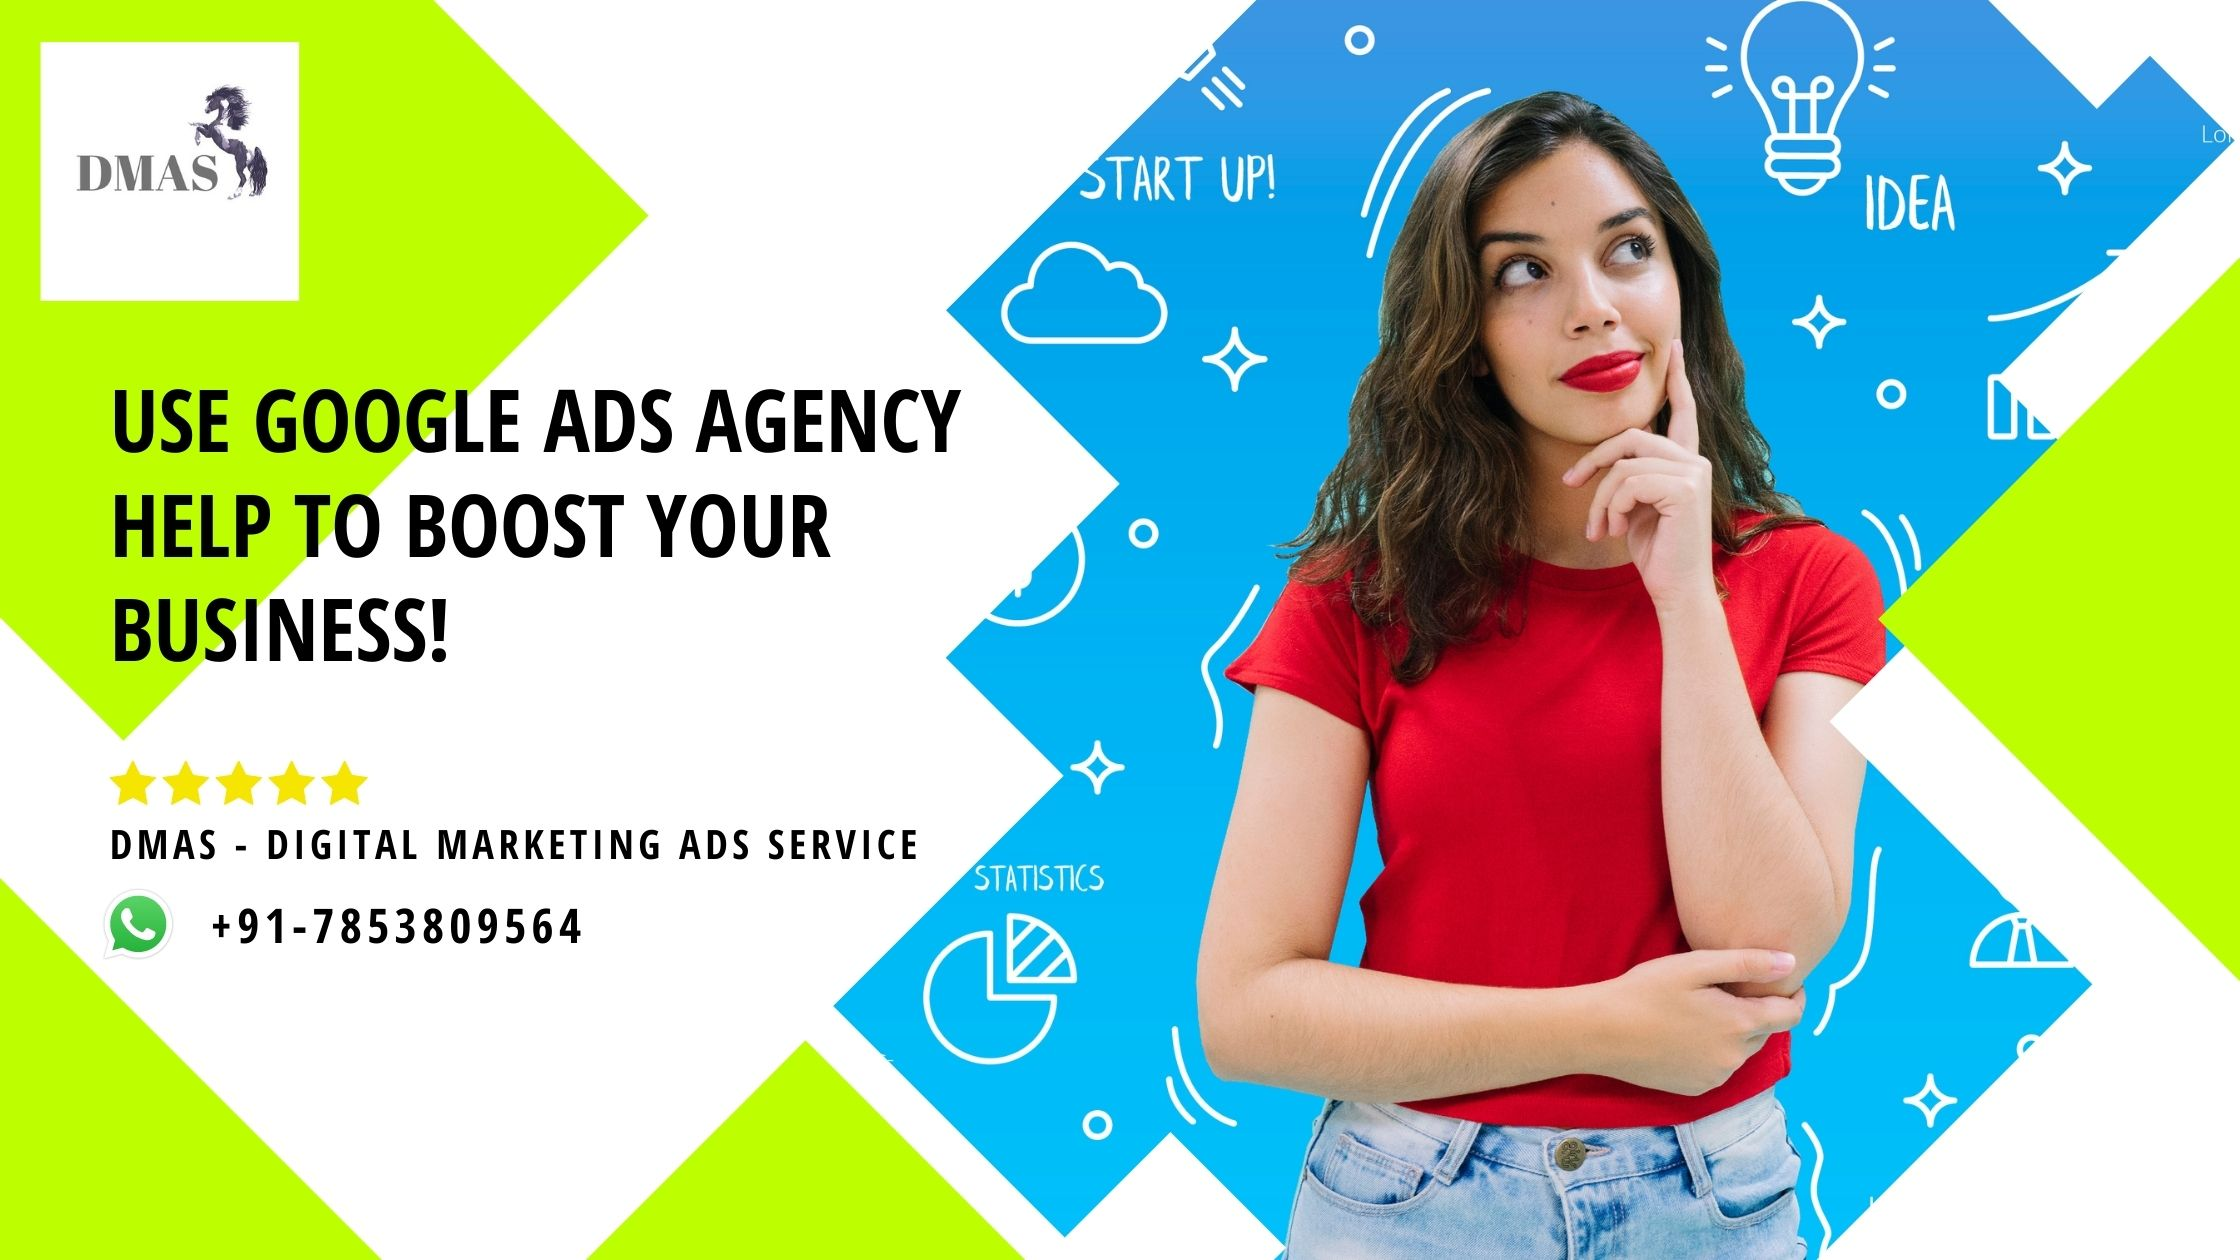 Use Google Ads Agency Help to Boost Your Business!